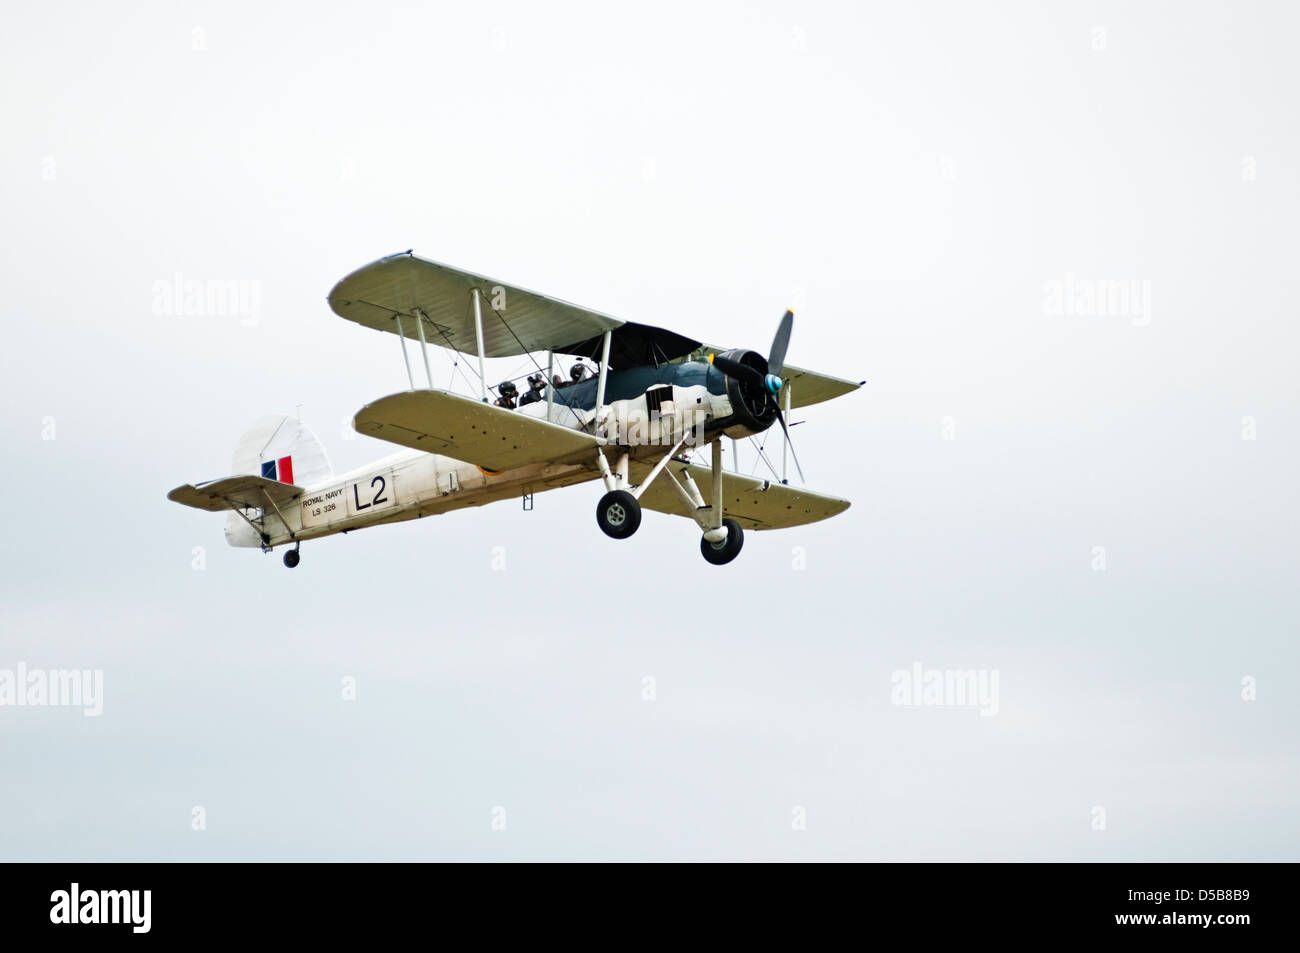 Seen from the ground, a vintage Swordfish bi-plane of the Royal Navy performs a fly-past at an air show. - Stock Image